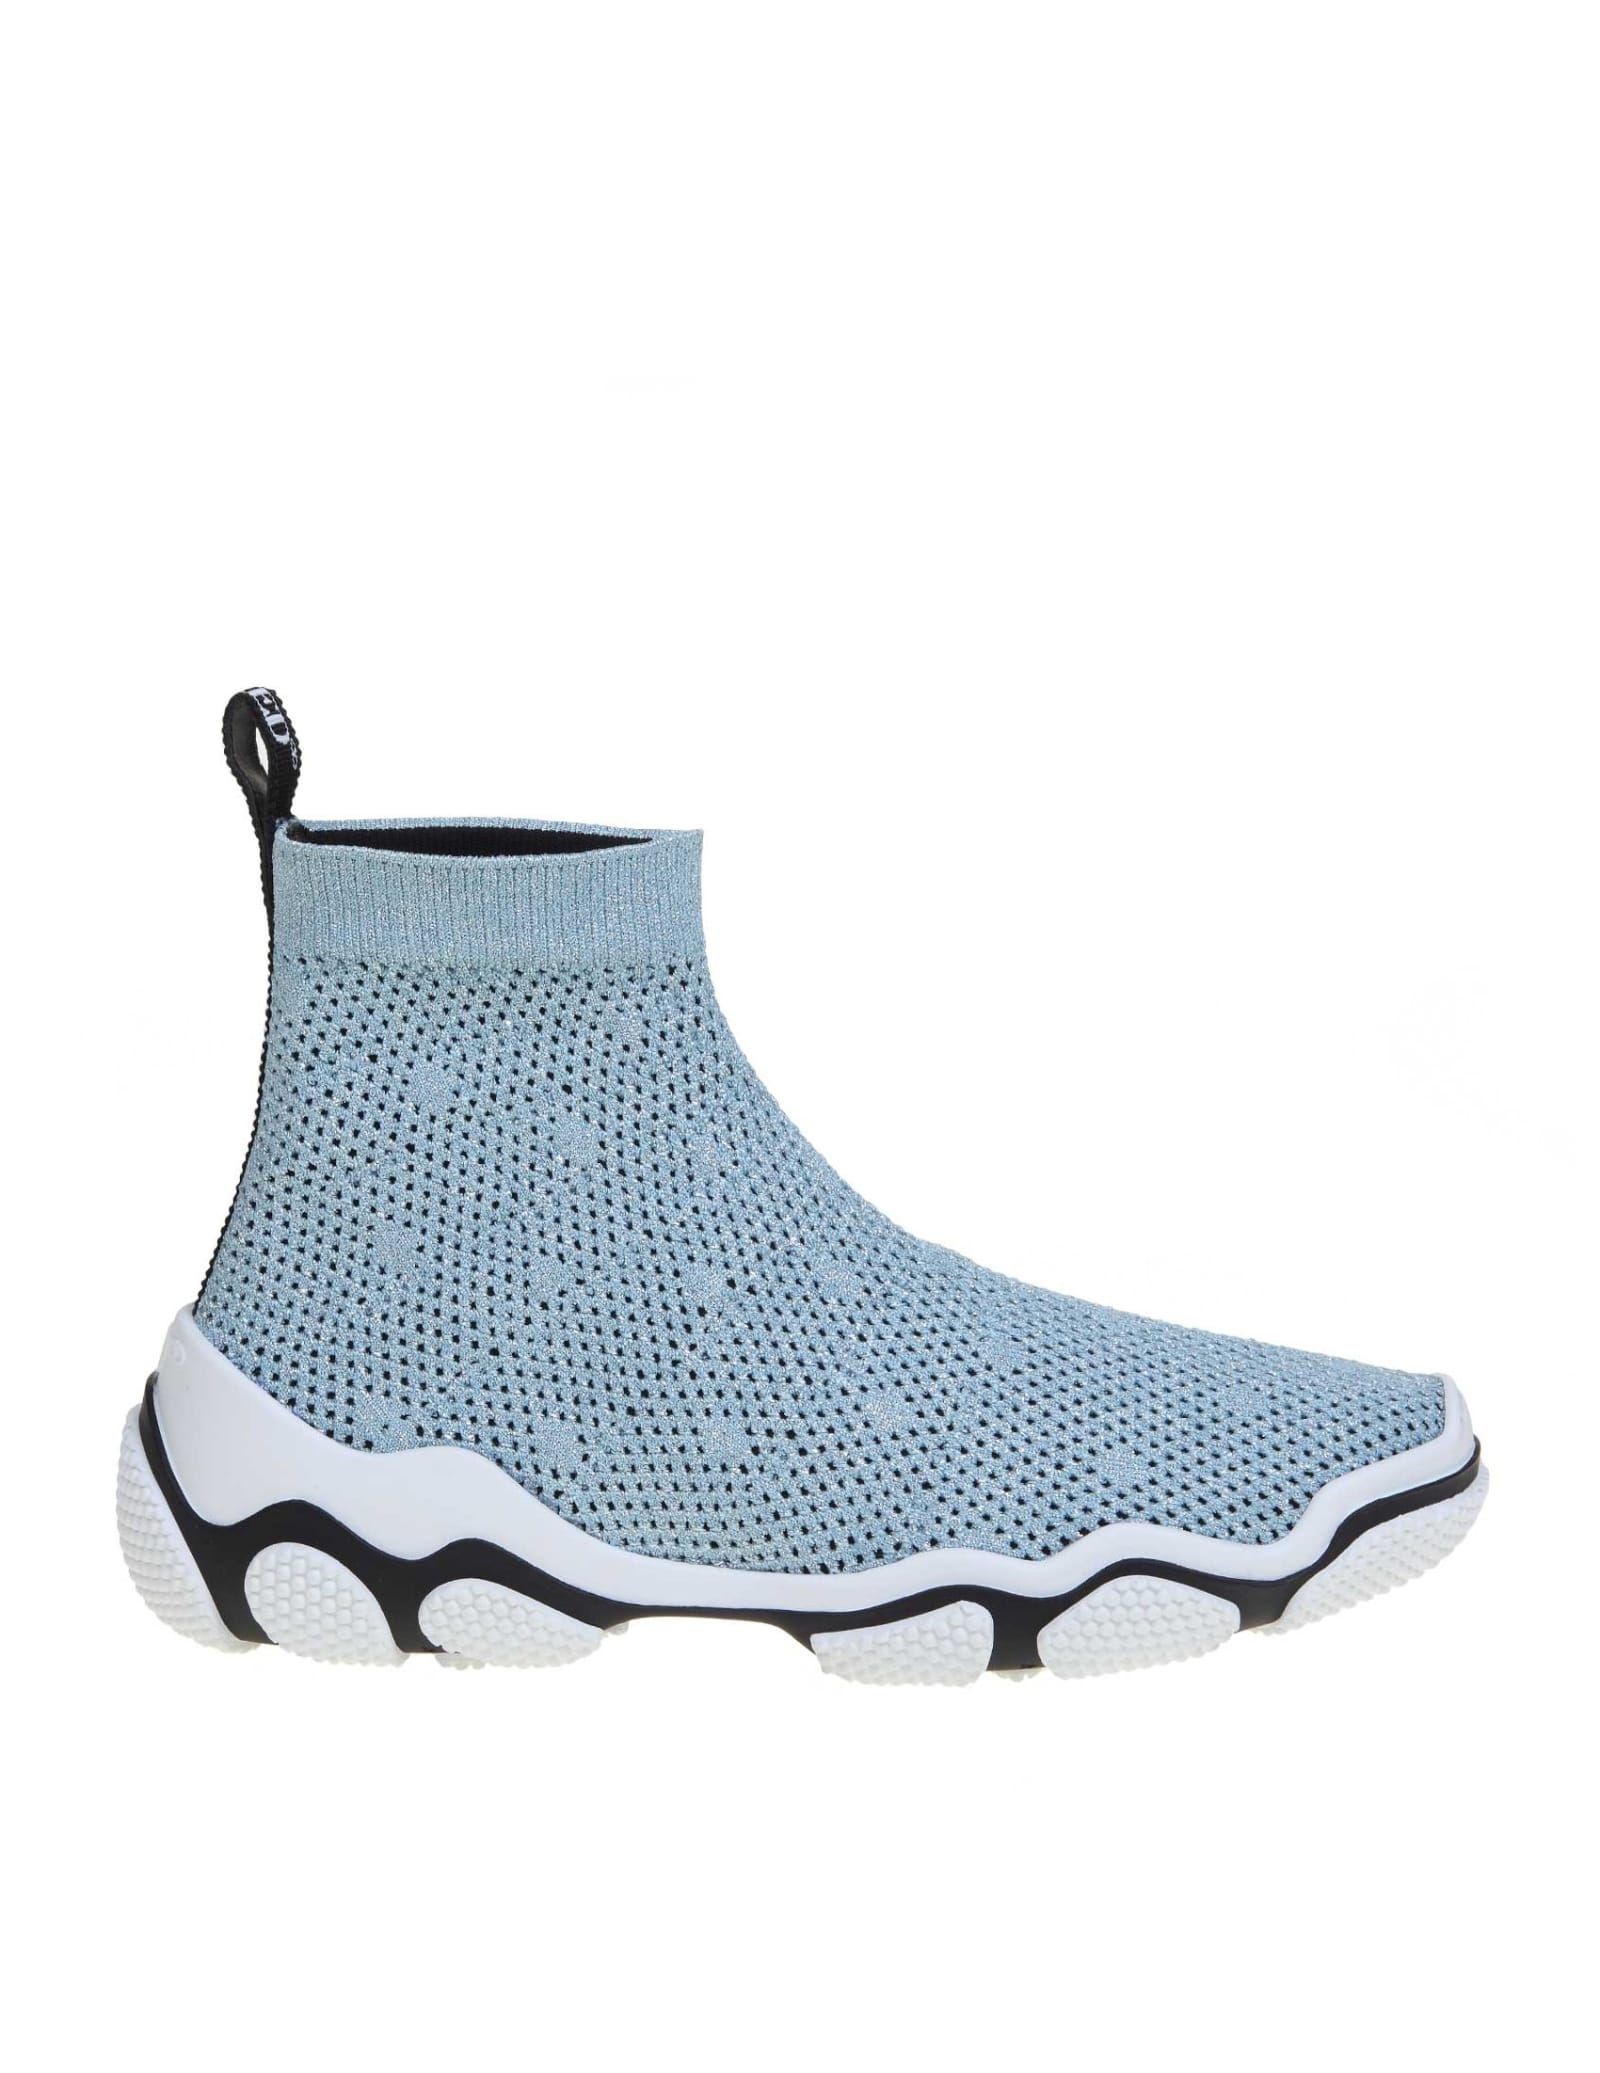 Lurex stretch knit sneakers light blue colour model with round tip logo tape on the heel part knit interior rubber sole composition: elastic mesh